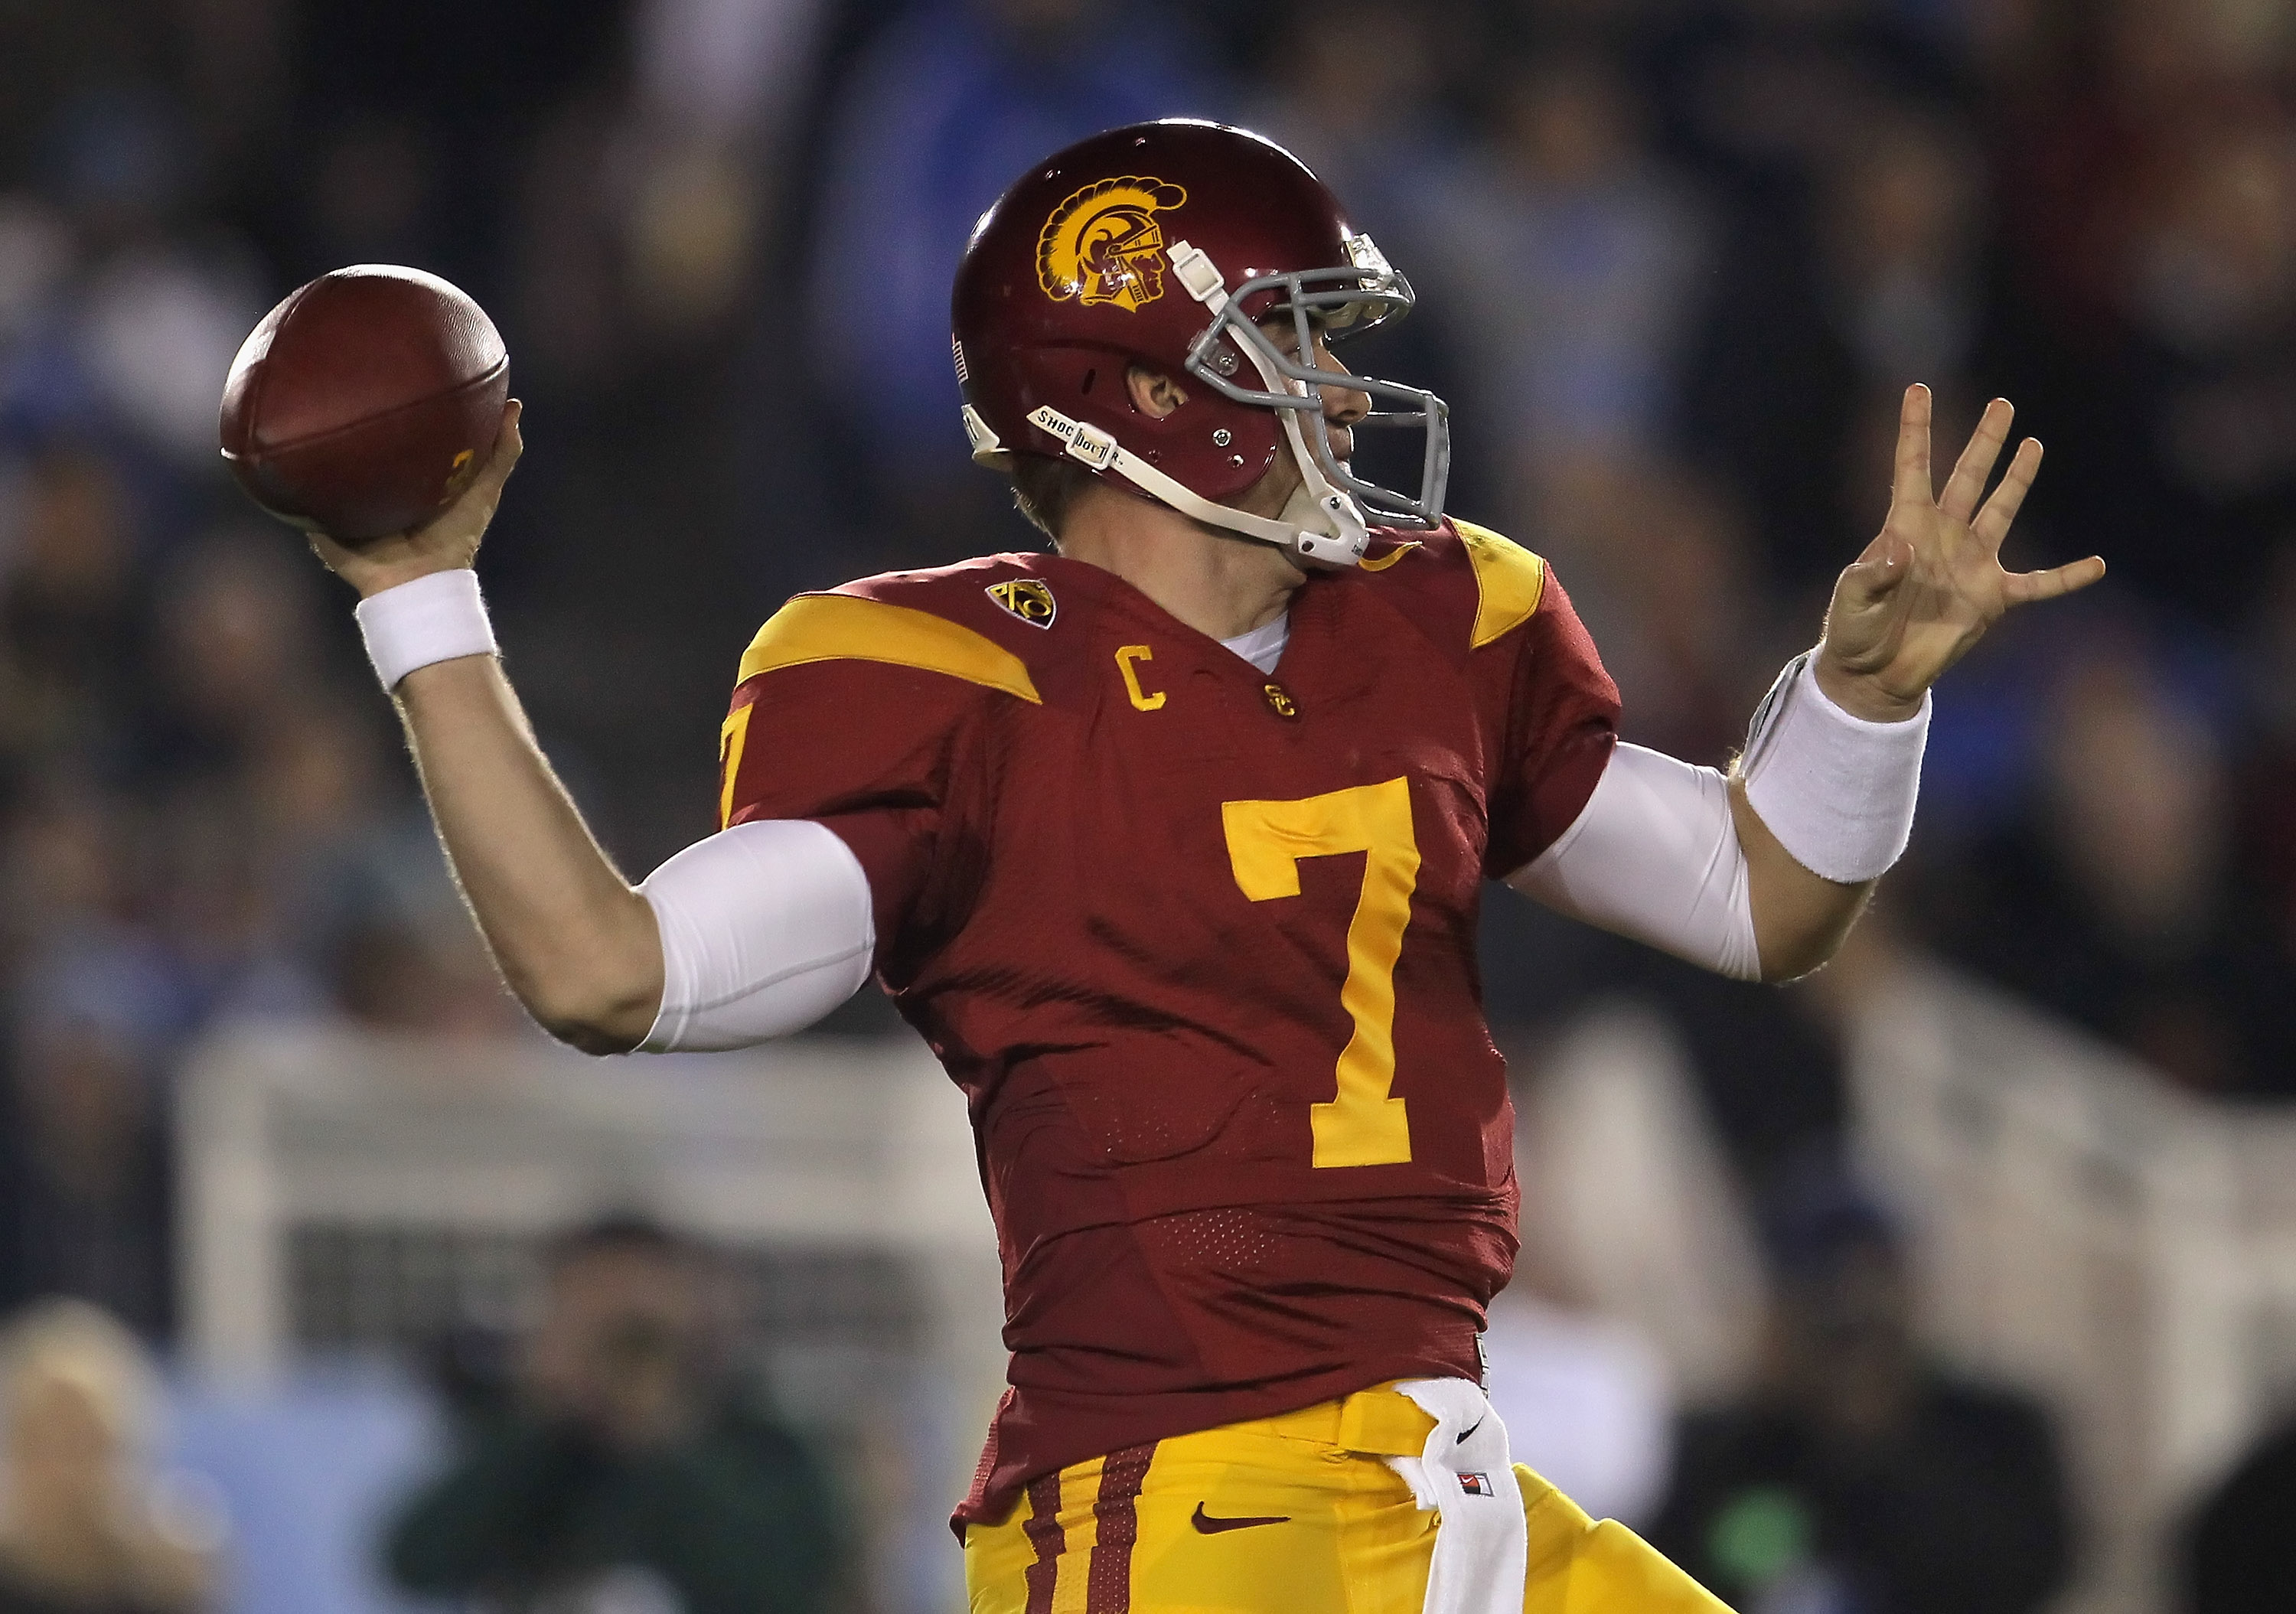 PASADENA, CA - DECEMBER 04:  Quarterback Matt Barkley #7 of the USC Trojans drops back to pass against the UCLA Bruins during the first half at the Rose Bowl on December 4, 2010 in Pasadena, California.  (Photo by Jeff Gross/Getty Images)